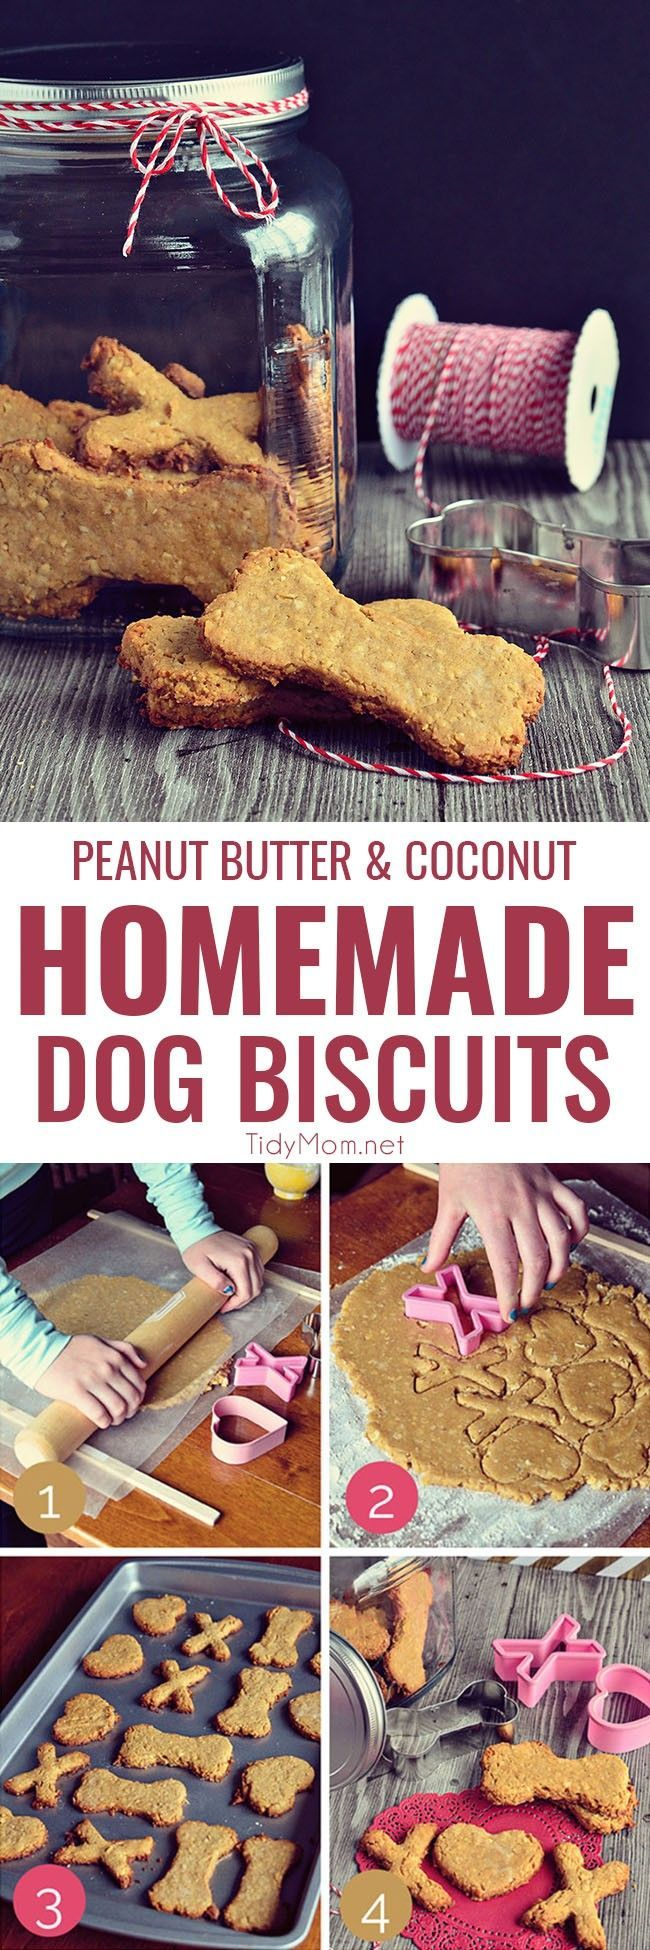 Good Gifts For Dog Lovers Part - 42: Homemade Peanut Butter Dog Biscuits